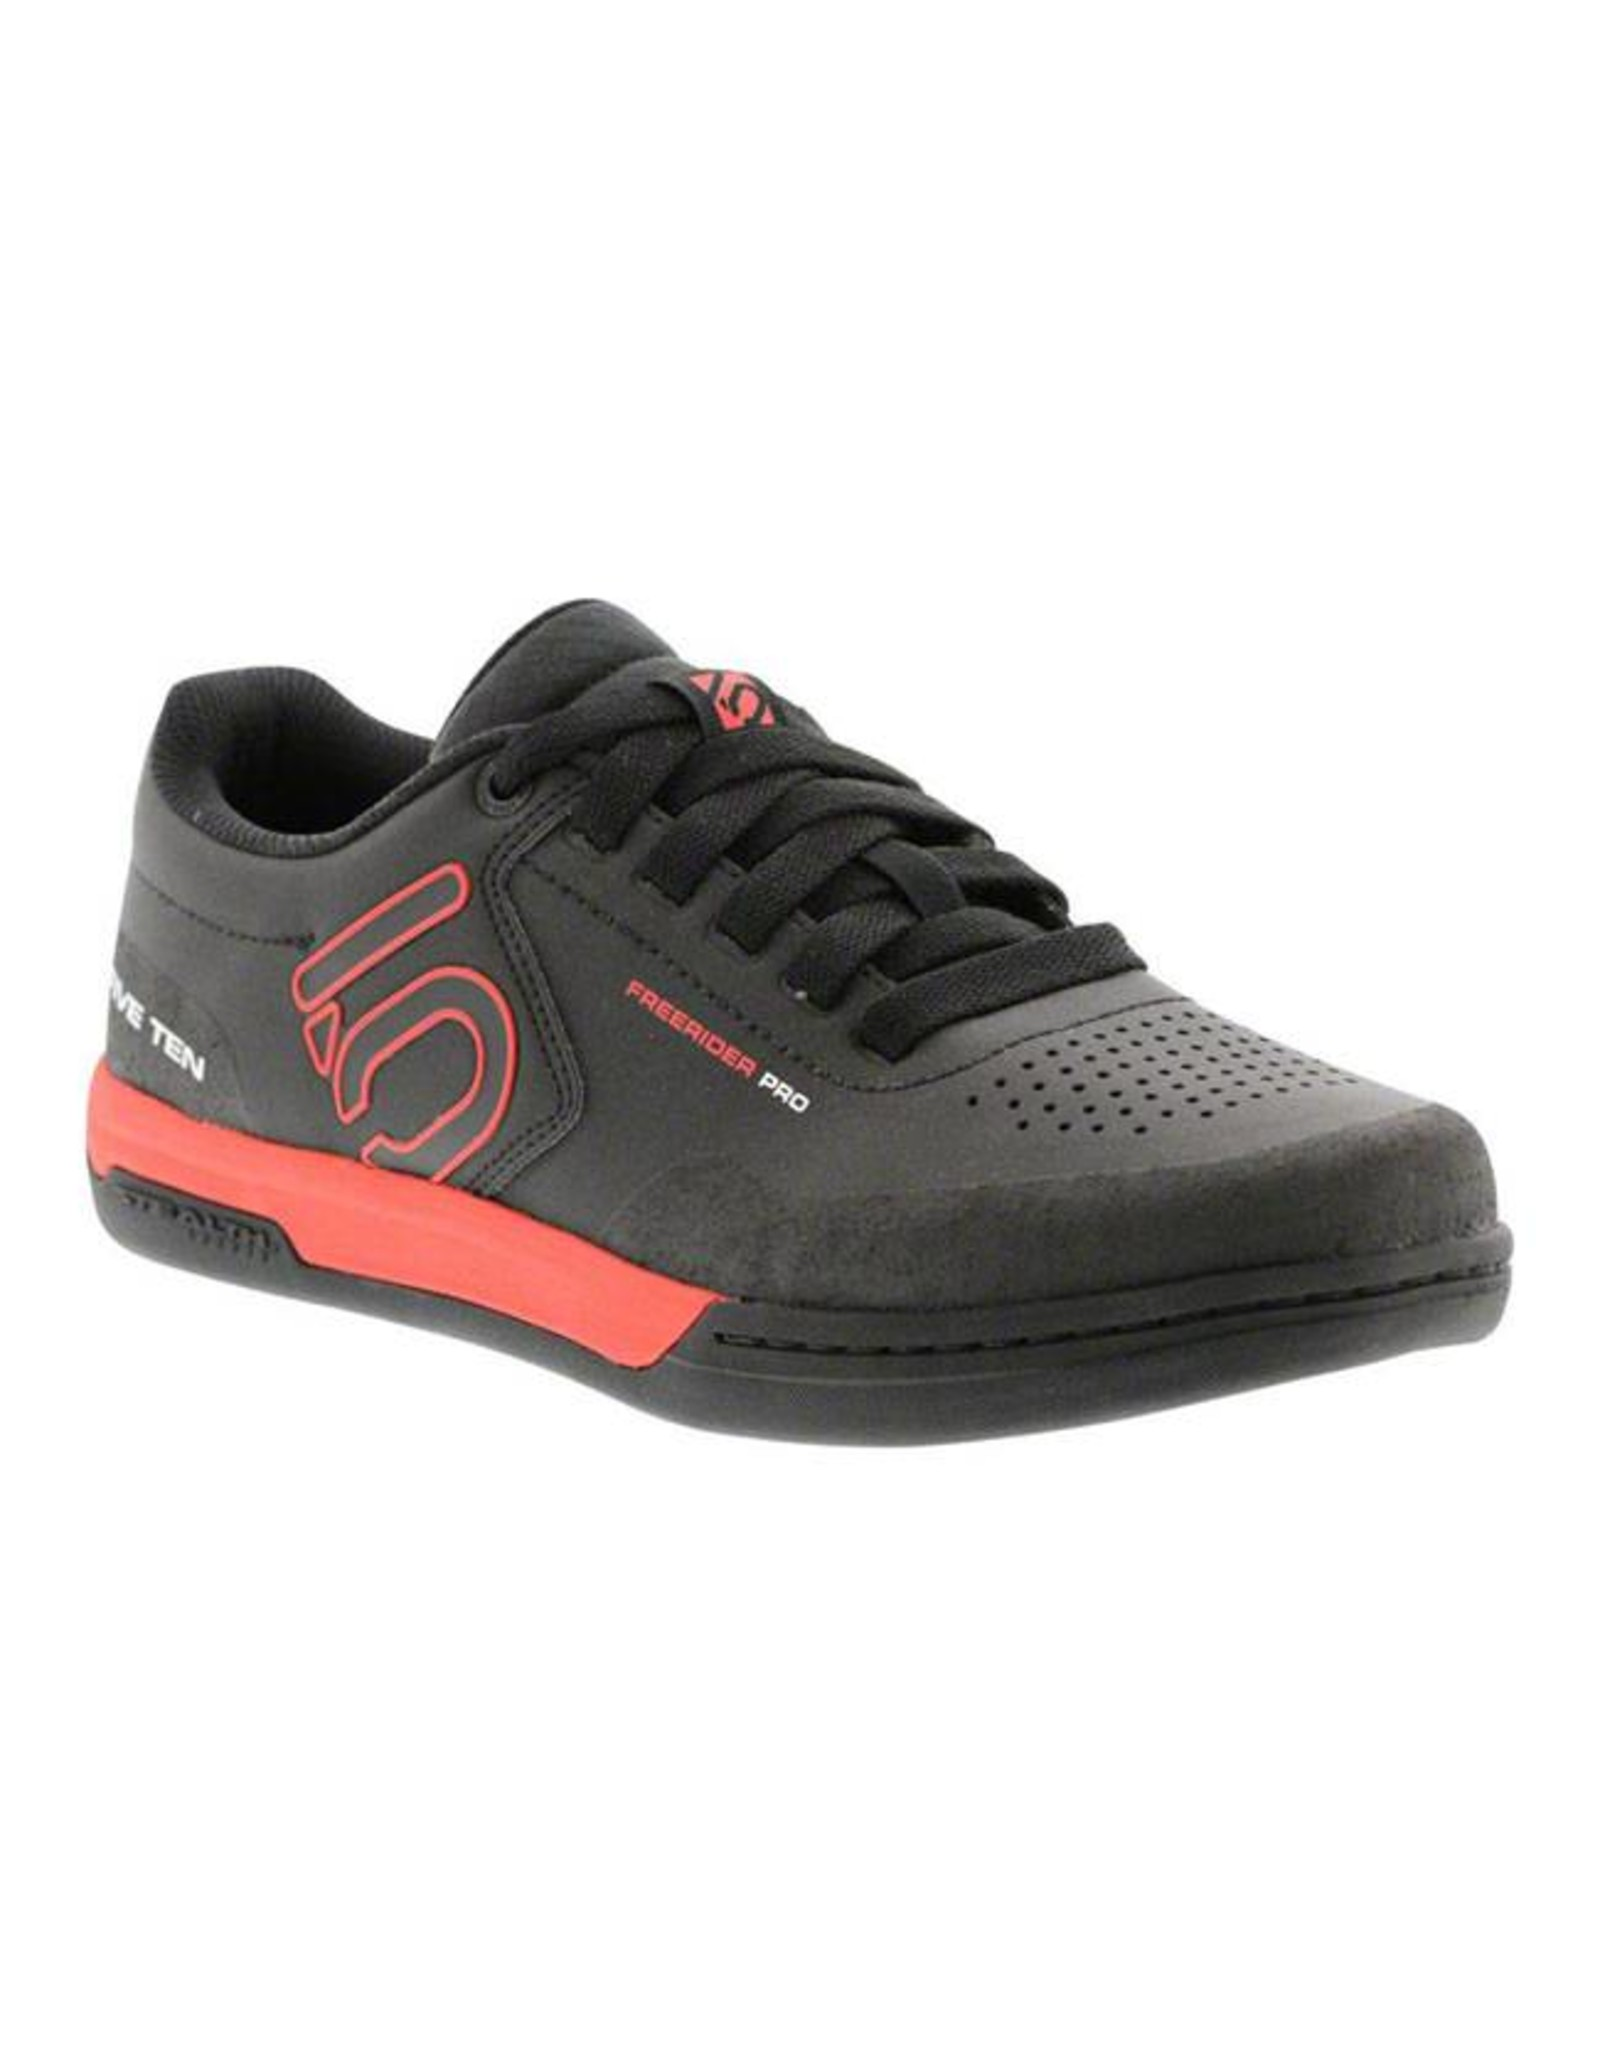 Five Ten Five Ten Freerider Pro Men's Flat Pedal Shoe: Black 9